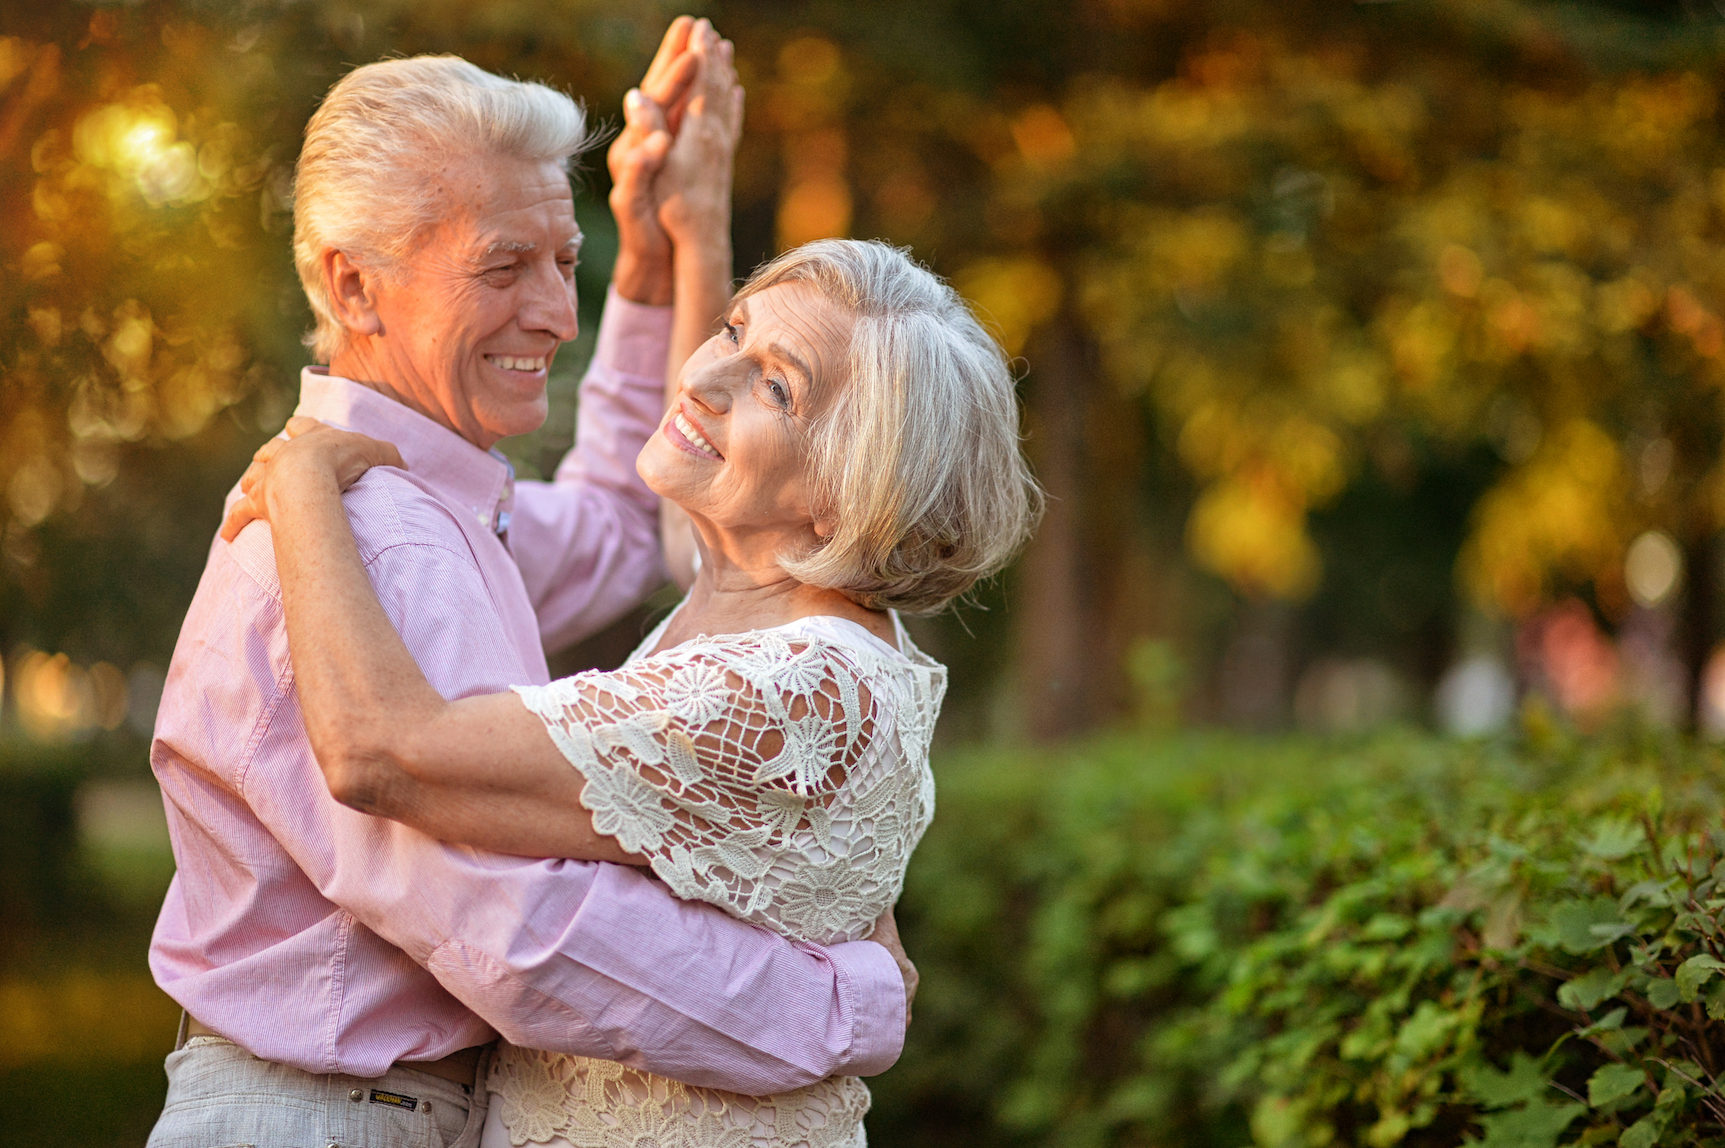 A new study has found that marriage can increase happiness and contentment, particularly for middle-aged couples.